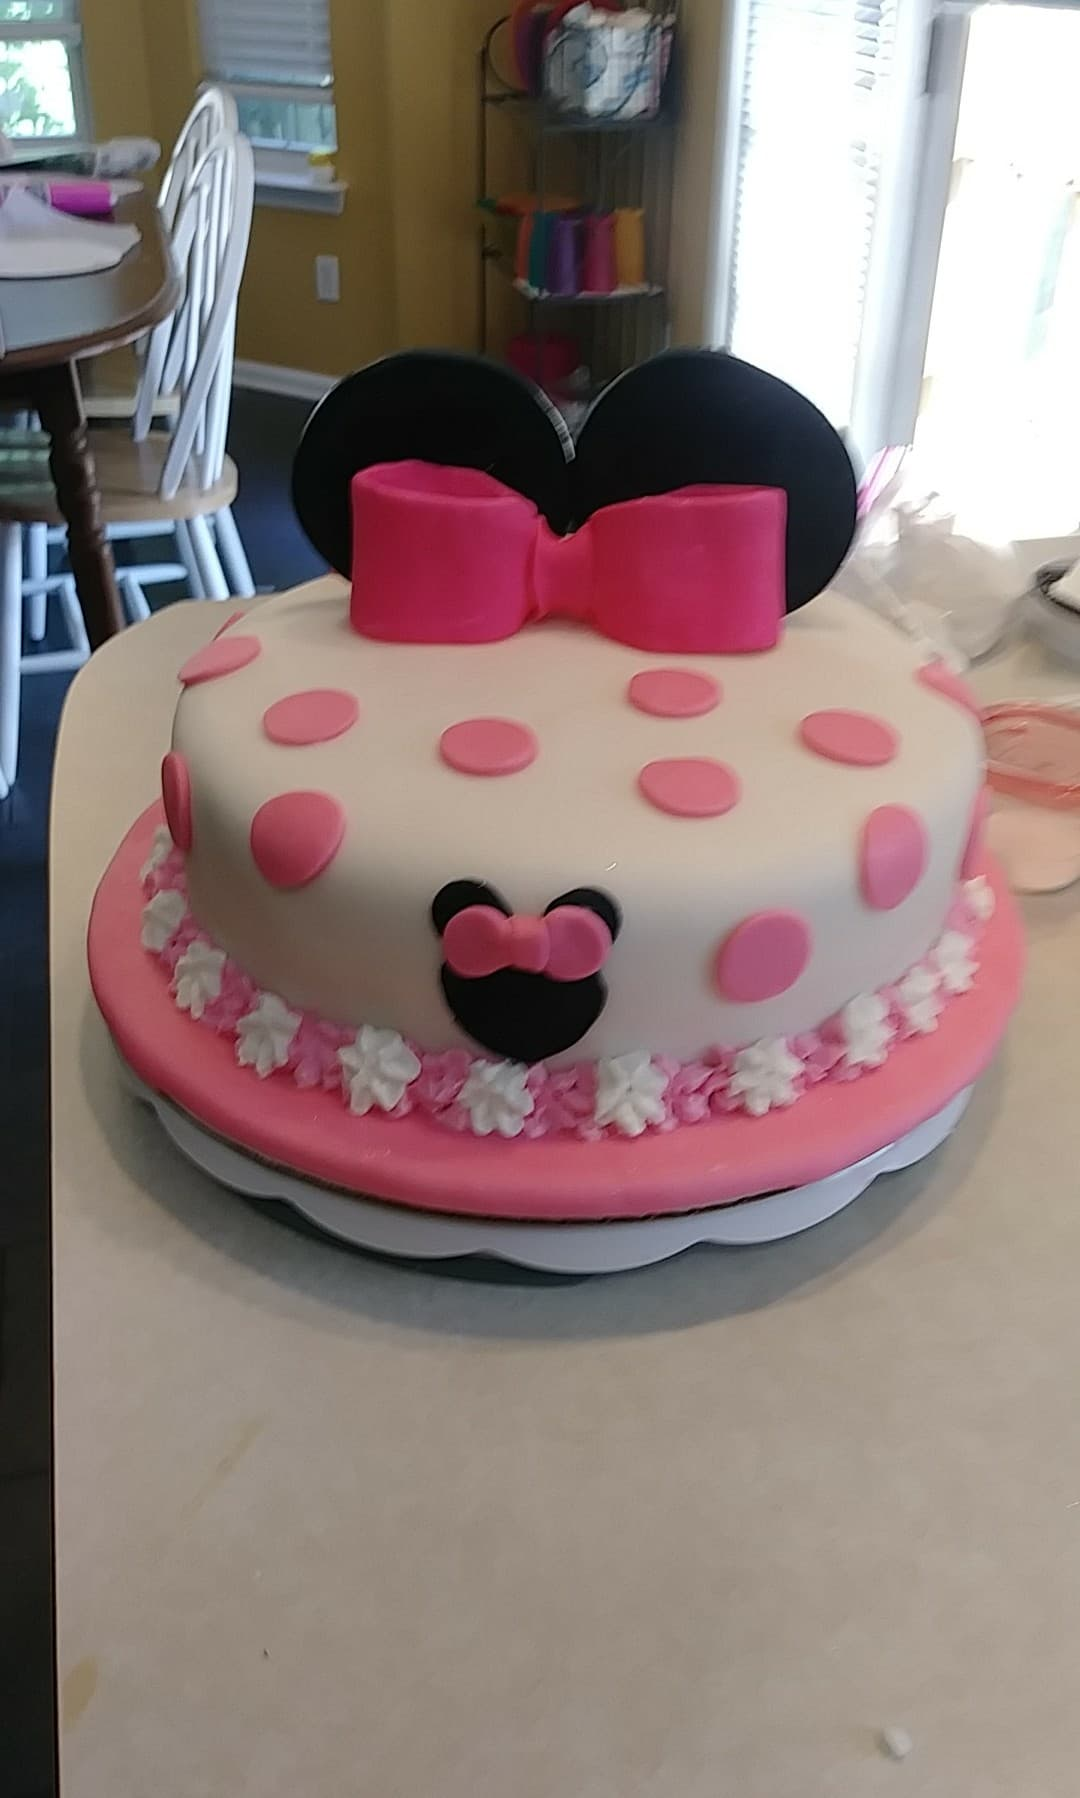 2 Year Old Birthday Cake : birthday, Birthday, Friend's, Today., Amateur,, Pleased, Turned, Cakedecorating